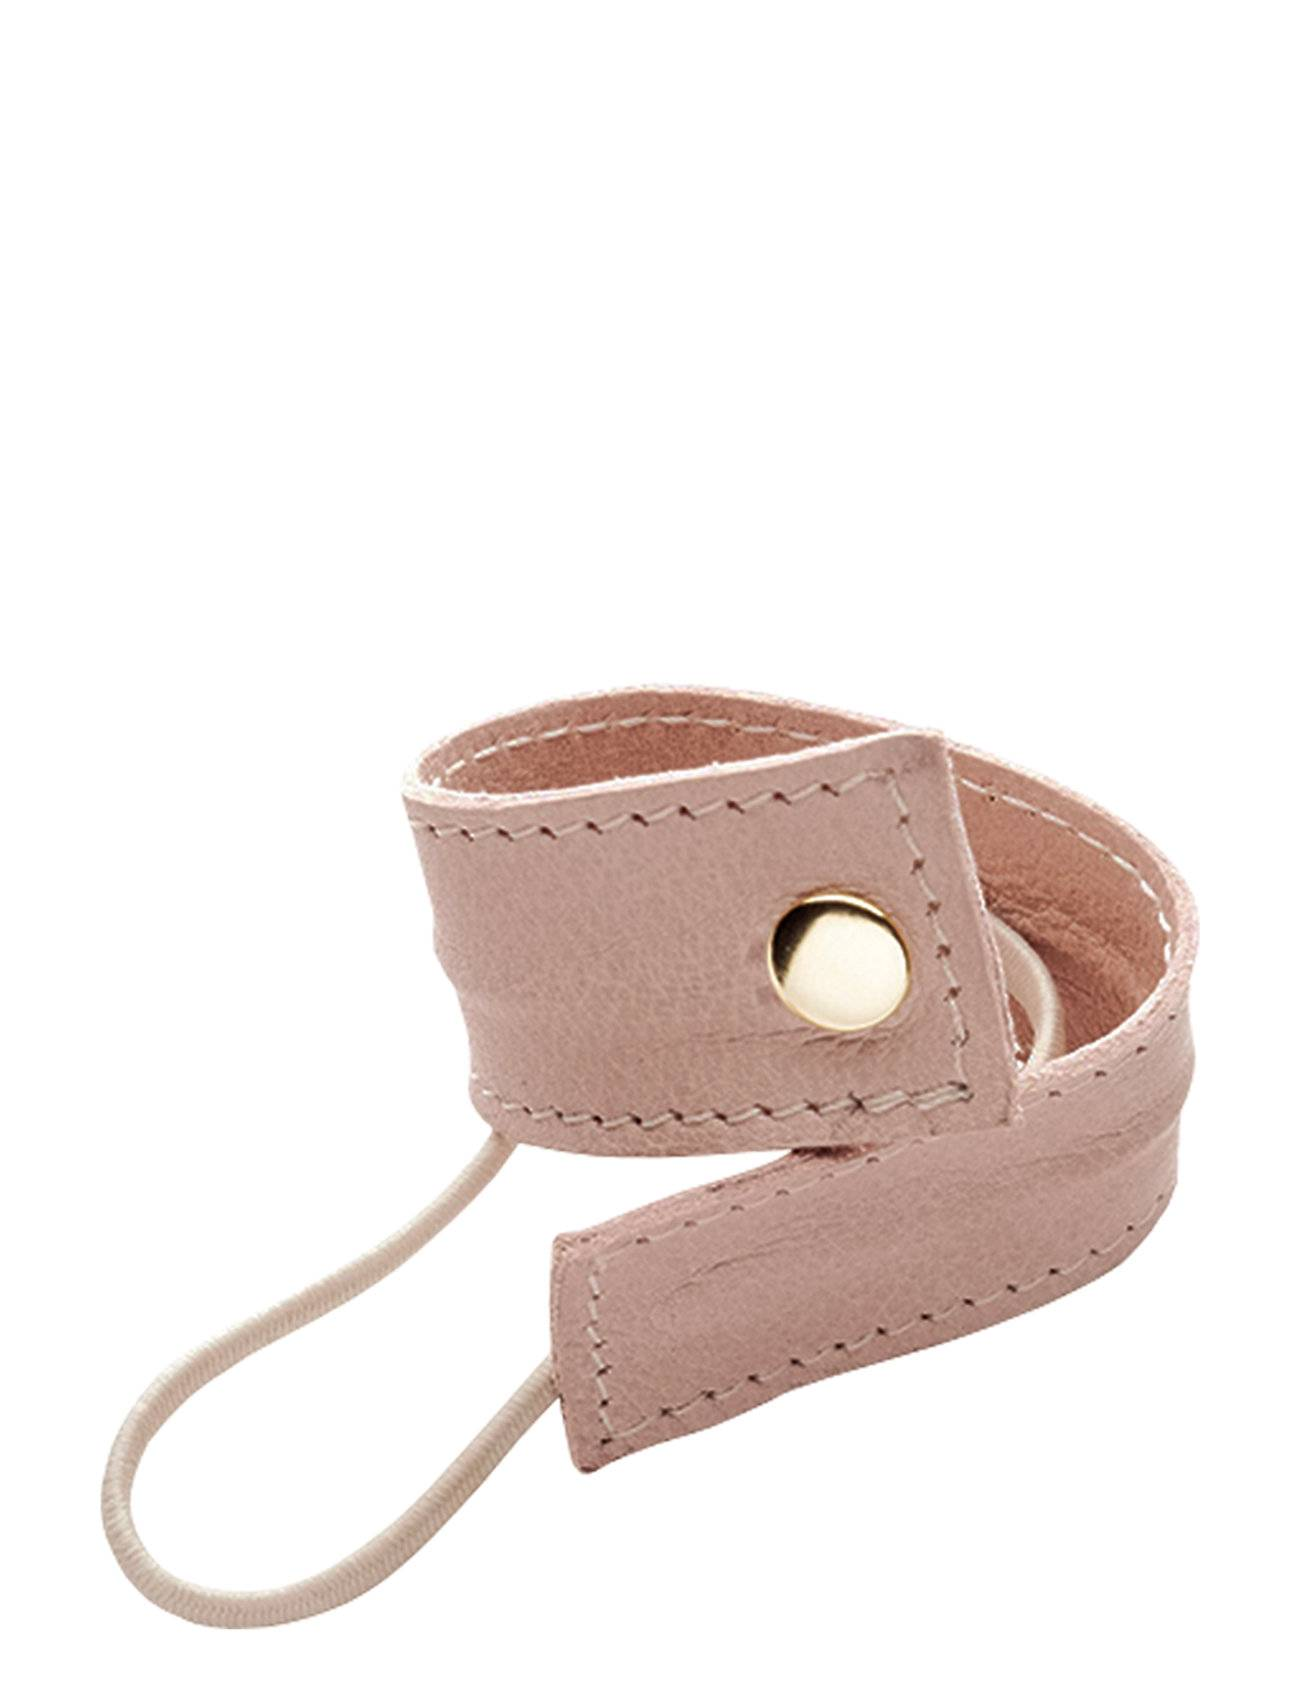 Image of Corinne Leather Band Short Bendable Beauty WOMEN Hair Accessories Hair Accessories Vaaleanpunainen Corinne